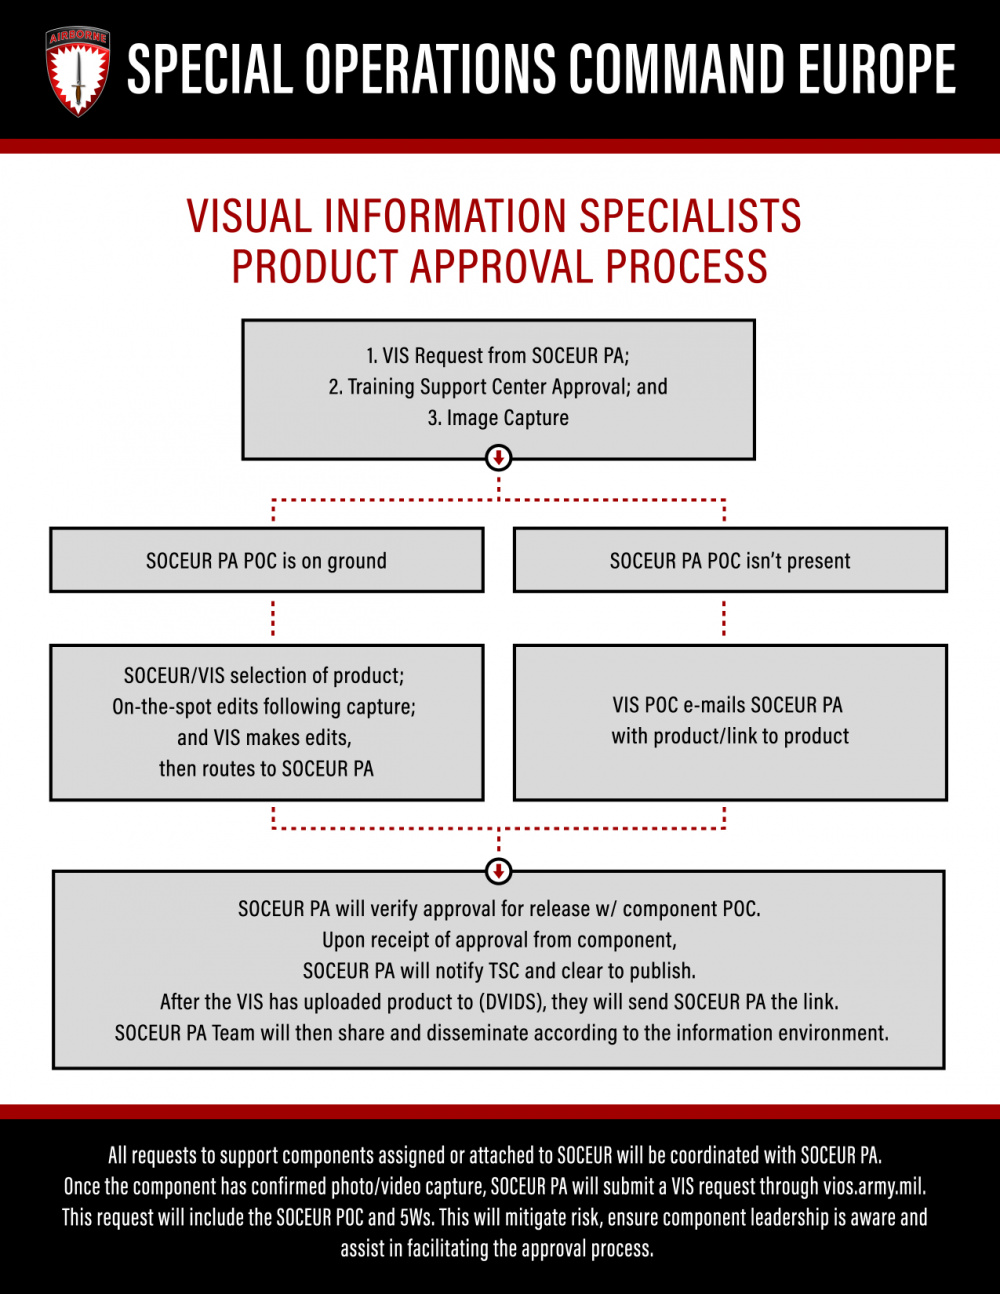 Visual Information Specialists Product Approval Process